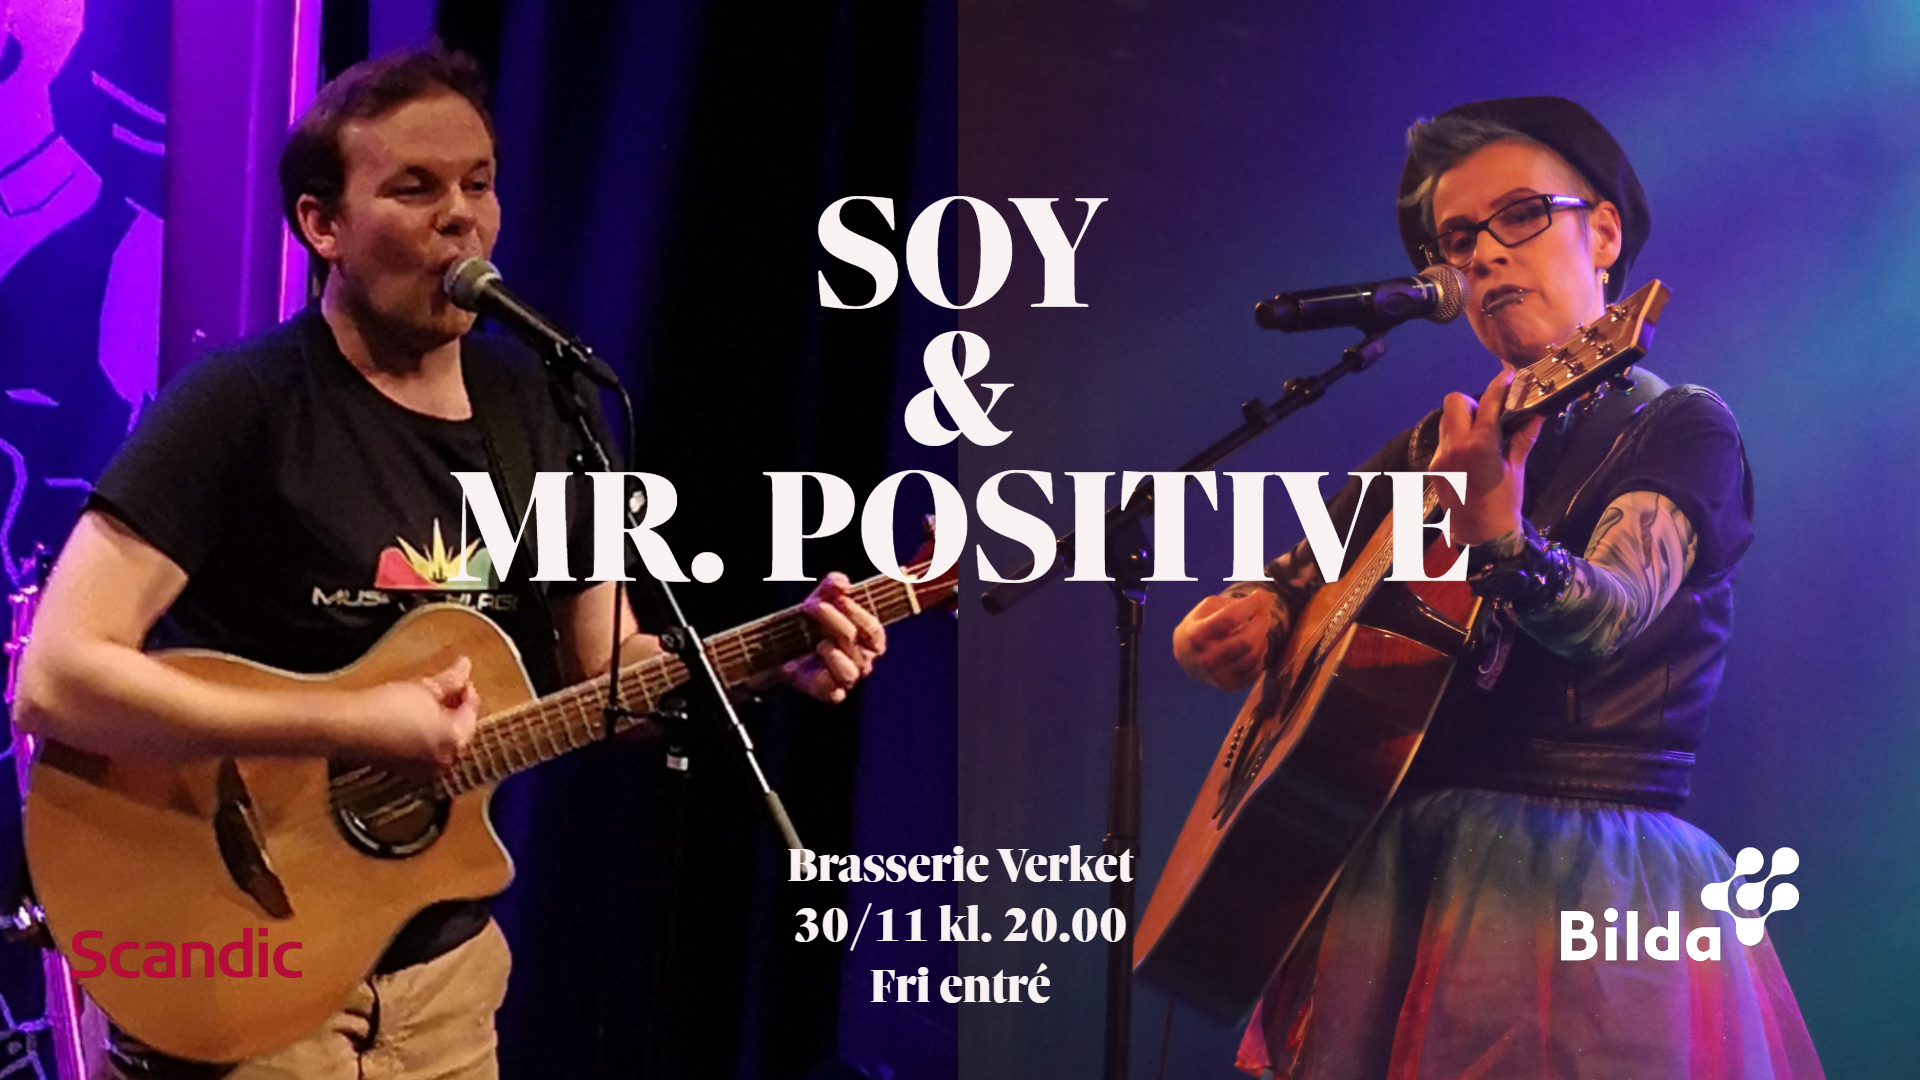 Musikschlaget presenterar: Soy & Mr Positive